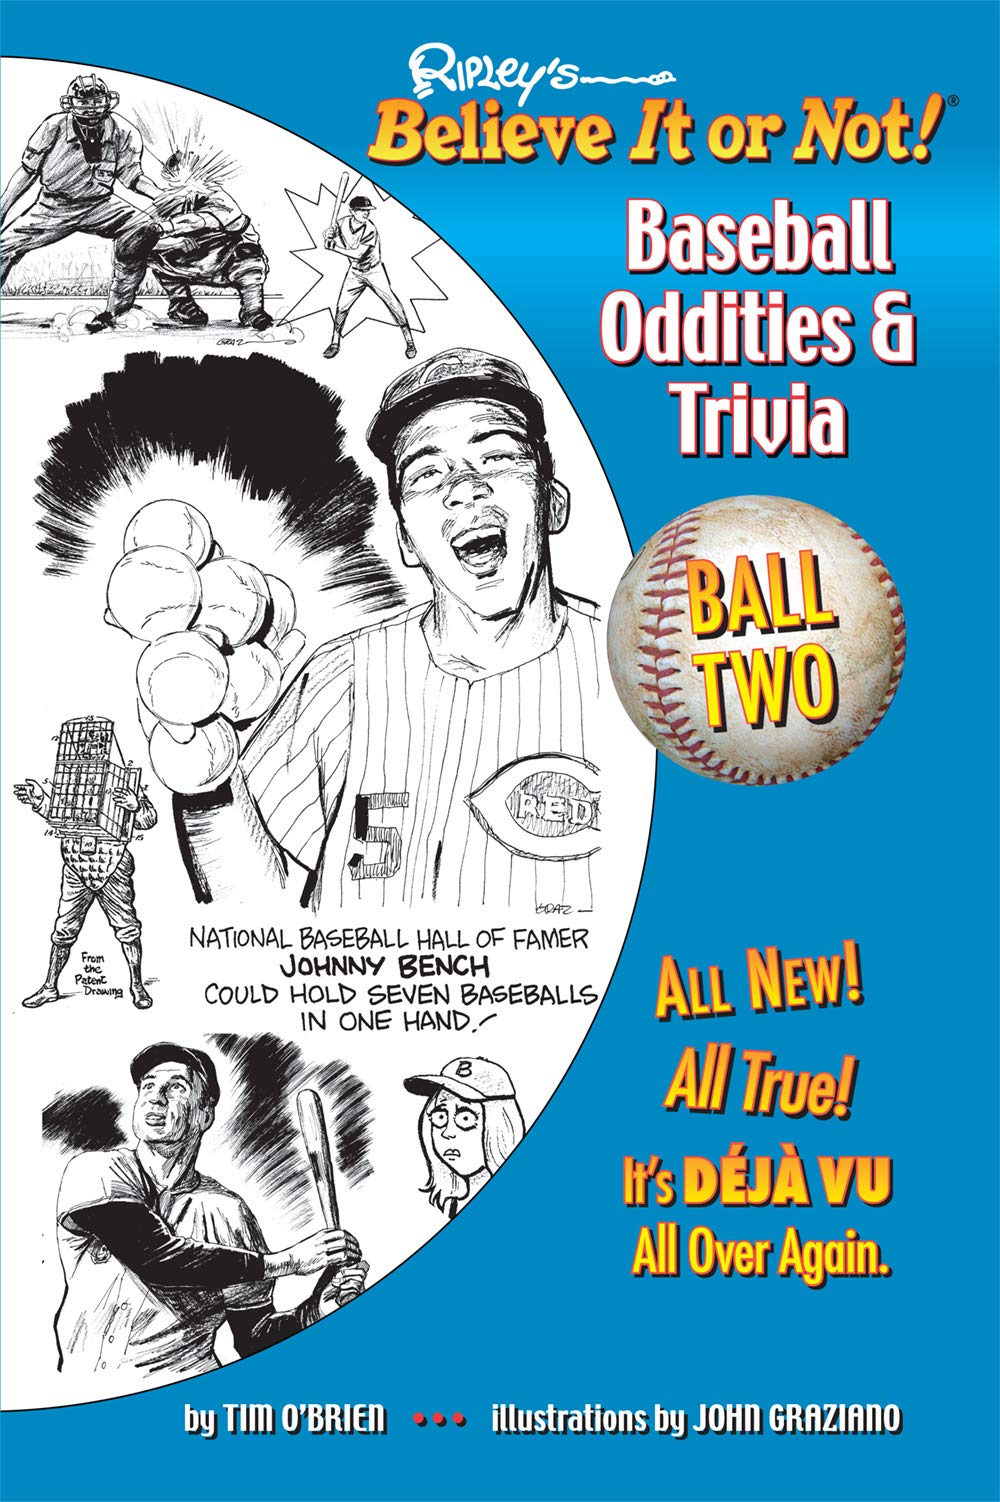 Ripley's Believe It or Not! Baseball Oddities & Trivia - Ball Two